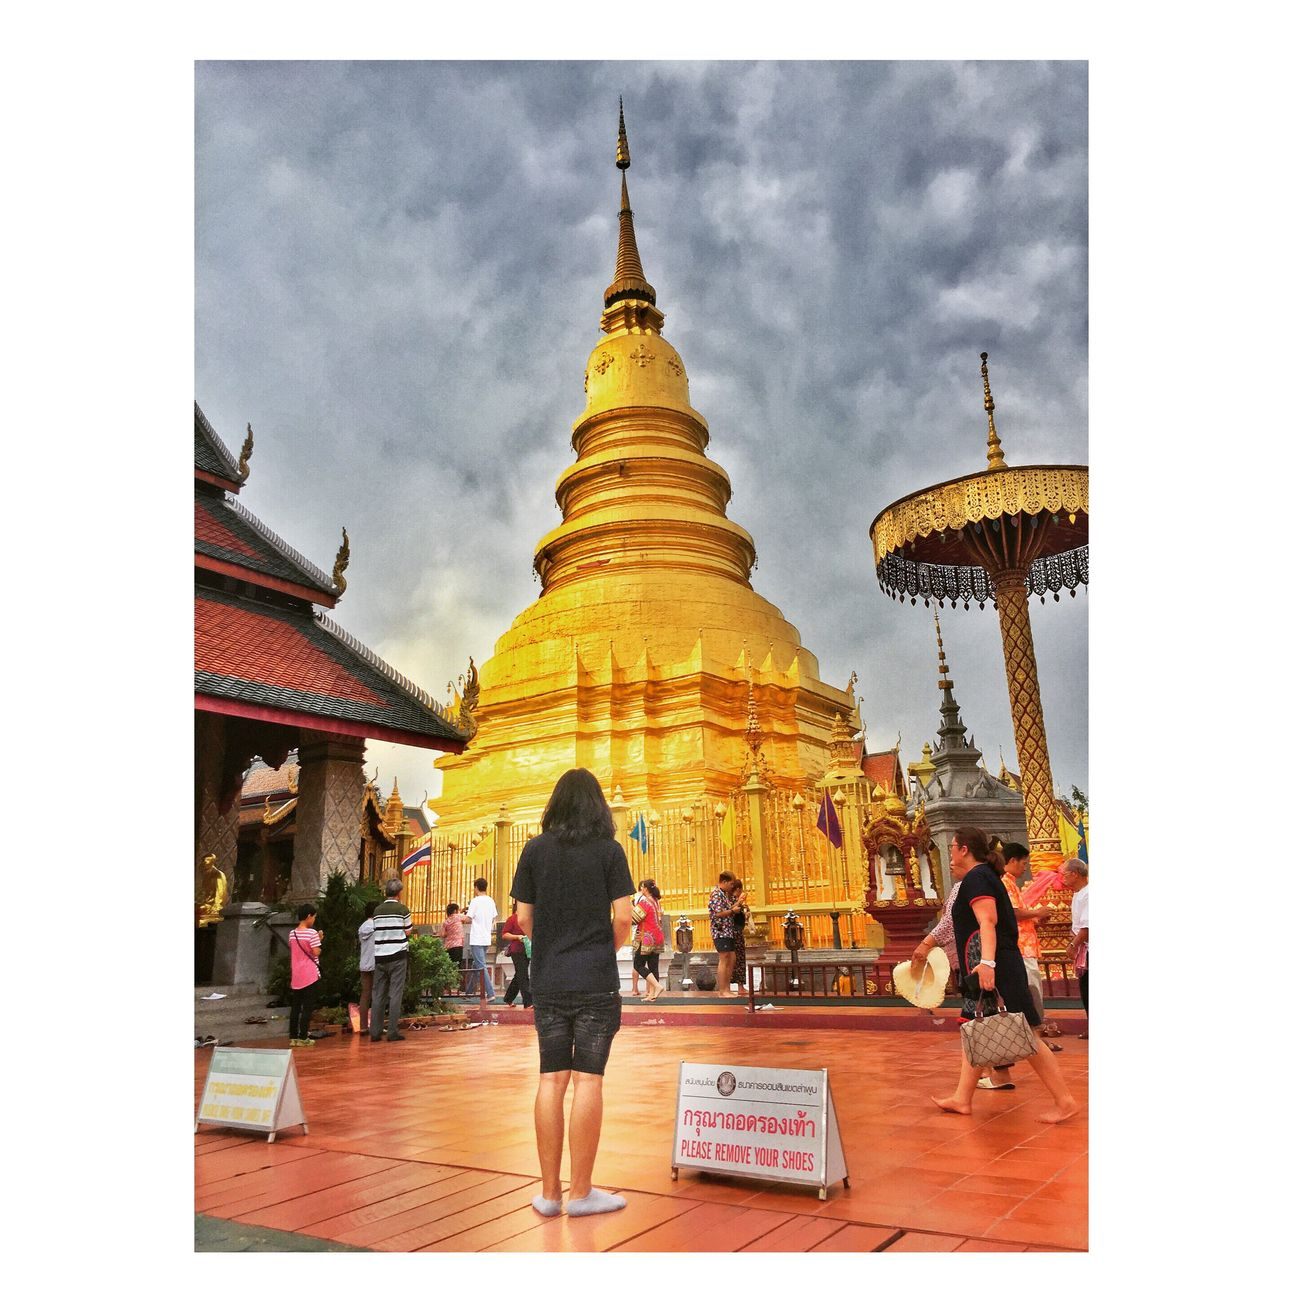 Travel Destinations Real People Gold Colored Religion Spirituality Architecture Pagoda Place Of Worship Built Structure Ancient Statue Sky Gold Building Exterior Men Day Outdoors